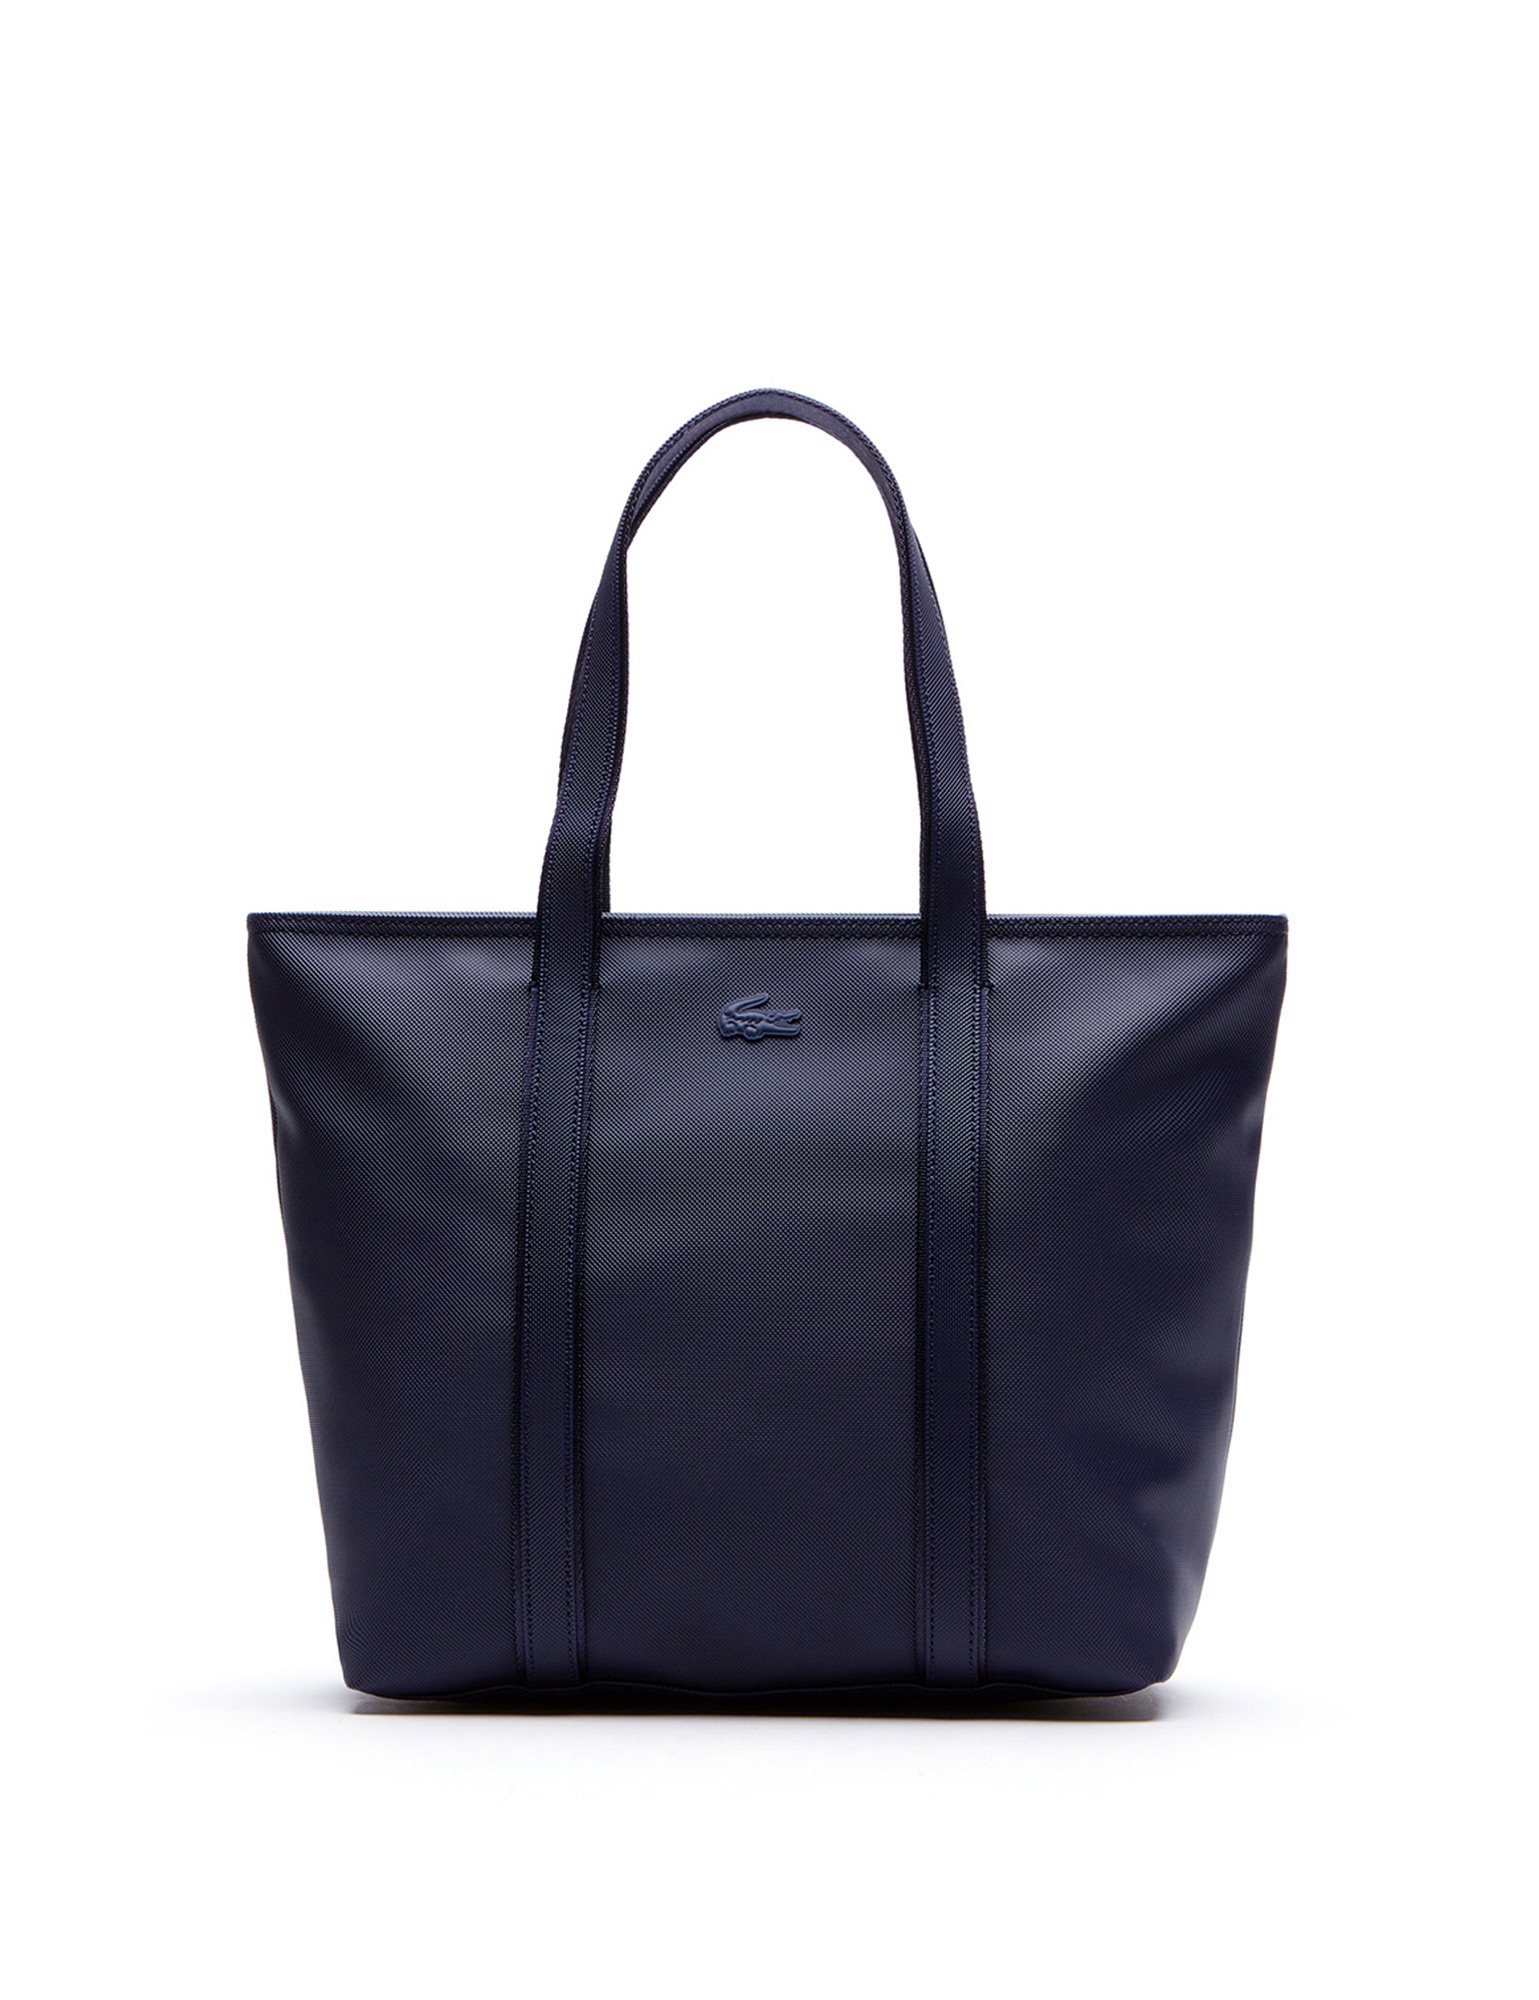 Peacoat Navy Medium Shopping Bag by Lacoste